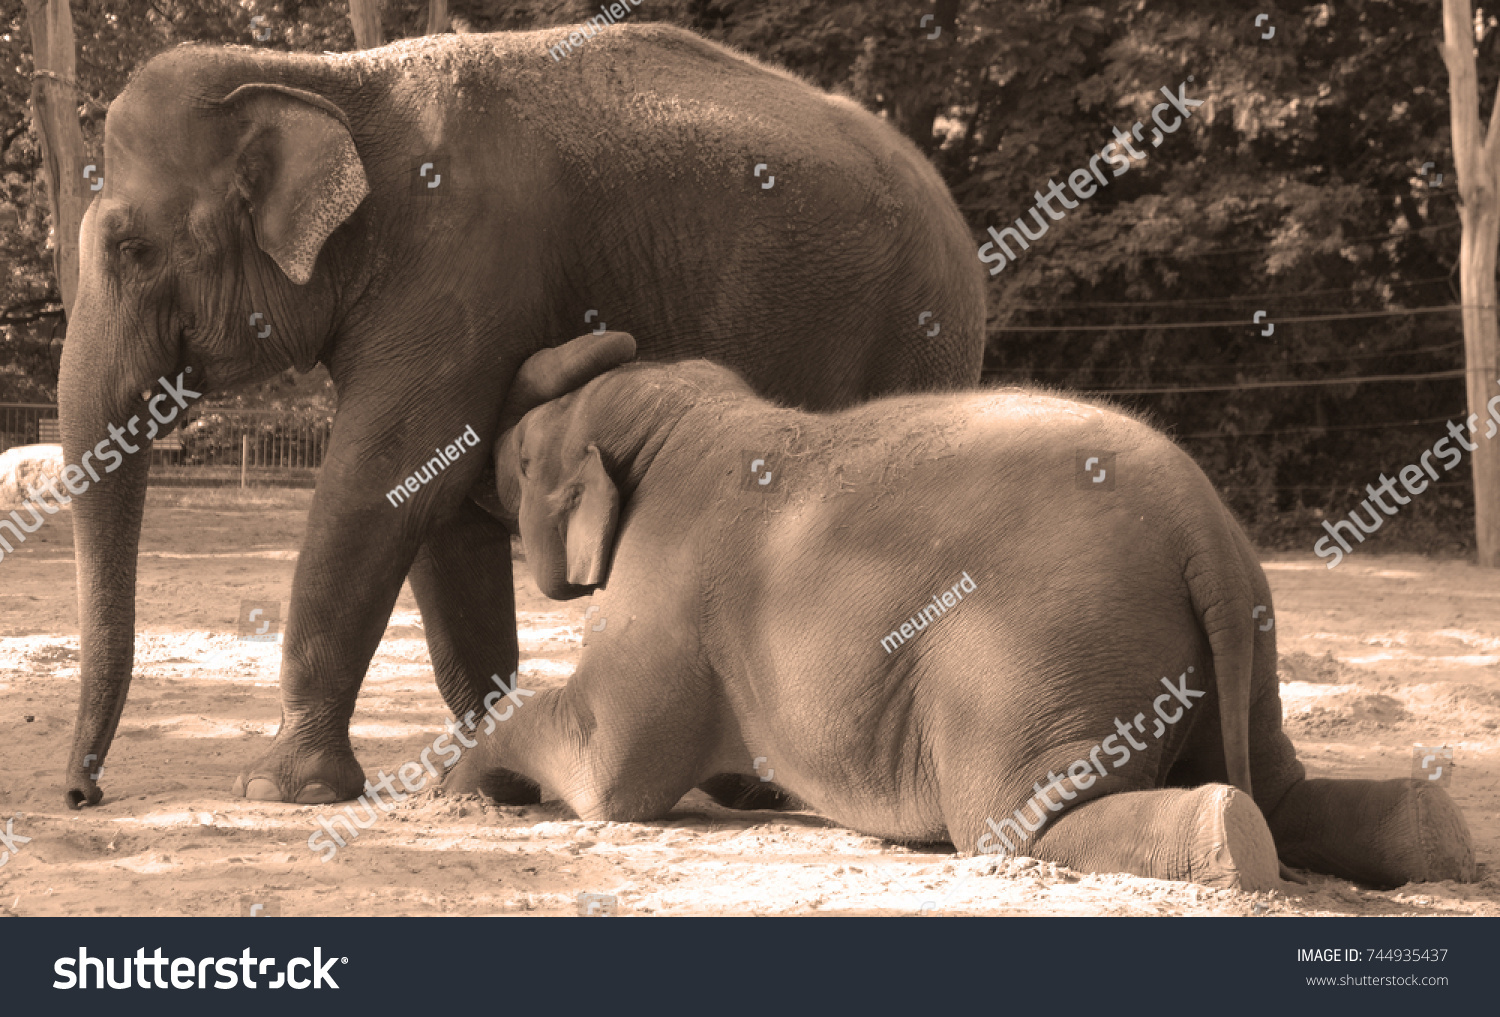 Breast baby elephant. There is no creation 55